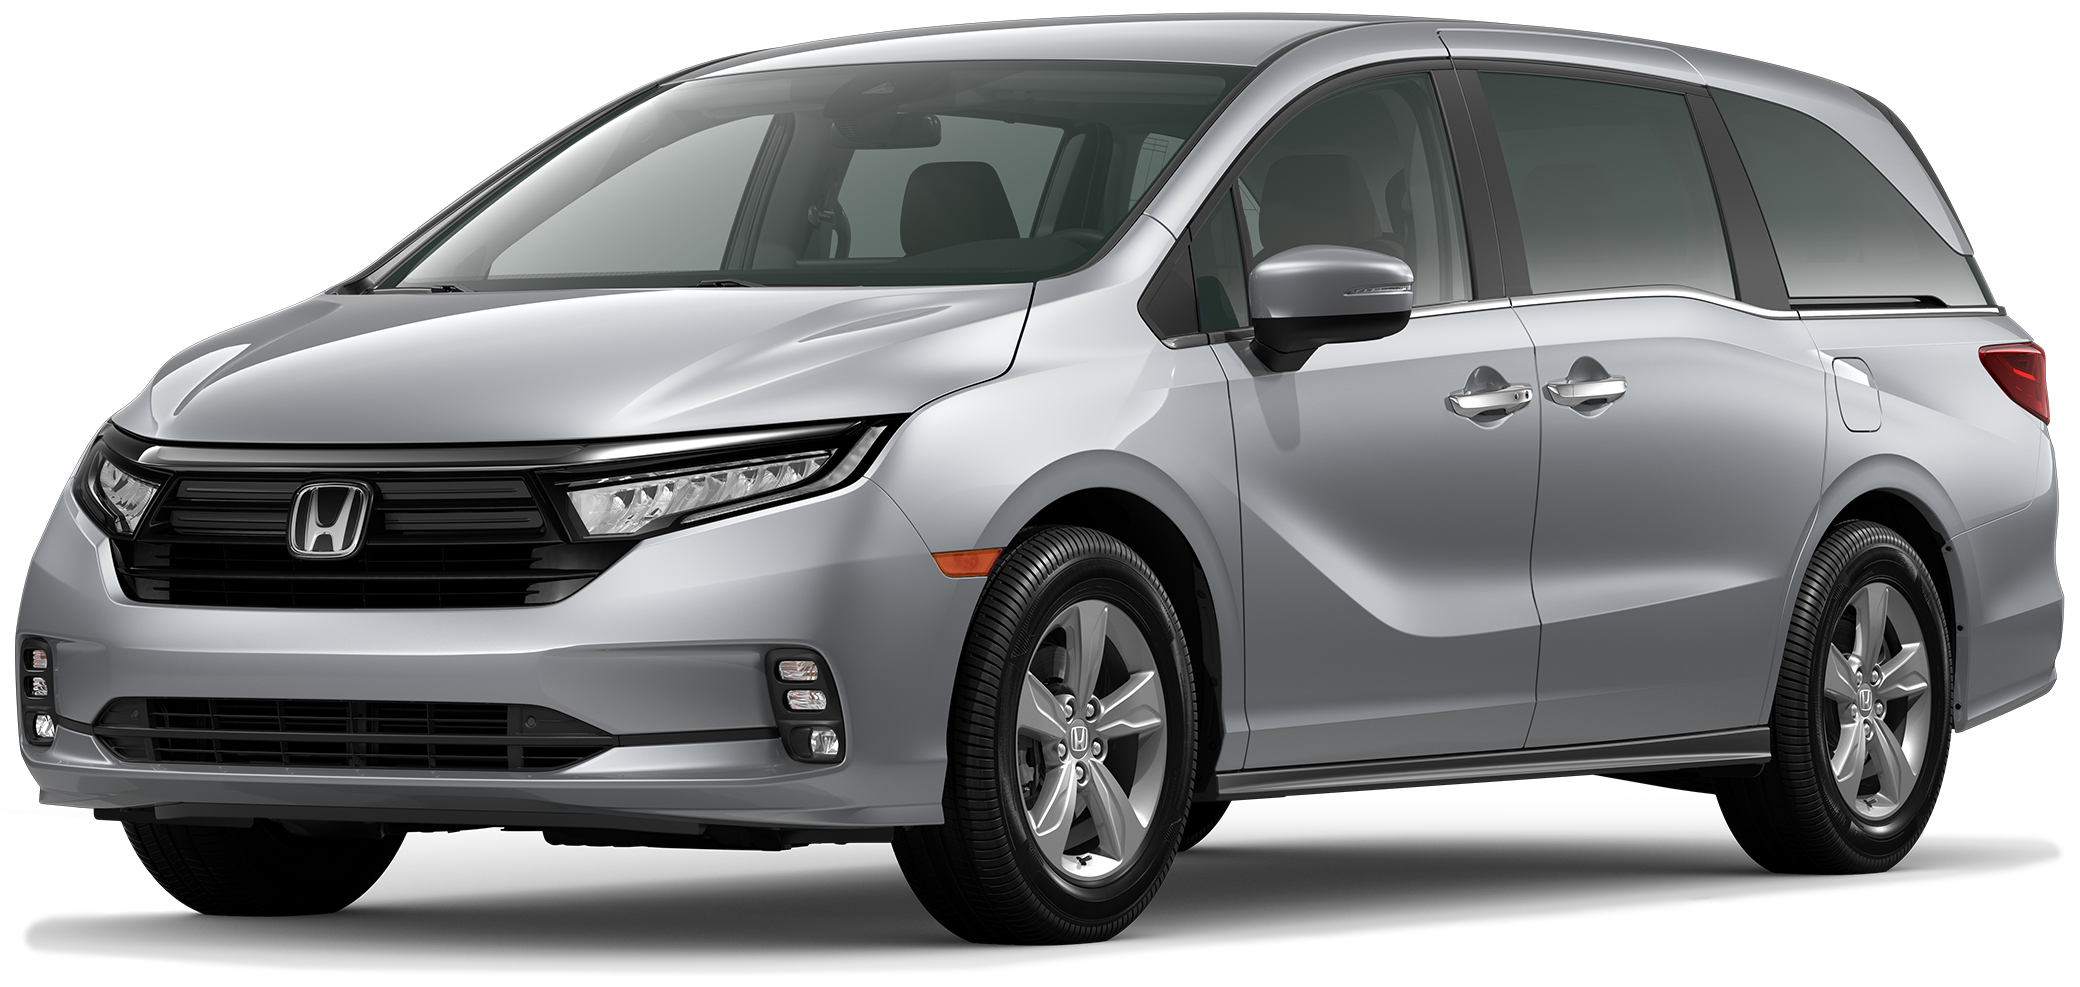 2021 Honda Odyssey Incentives, Specials & Offers in Riverhead NY